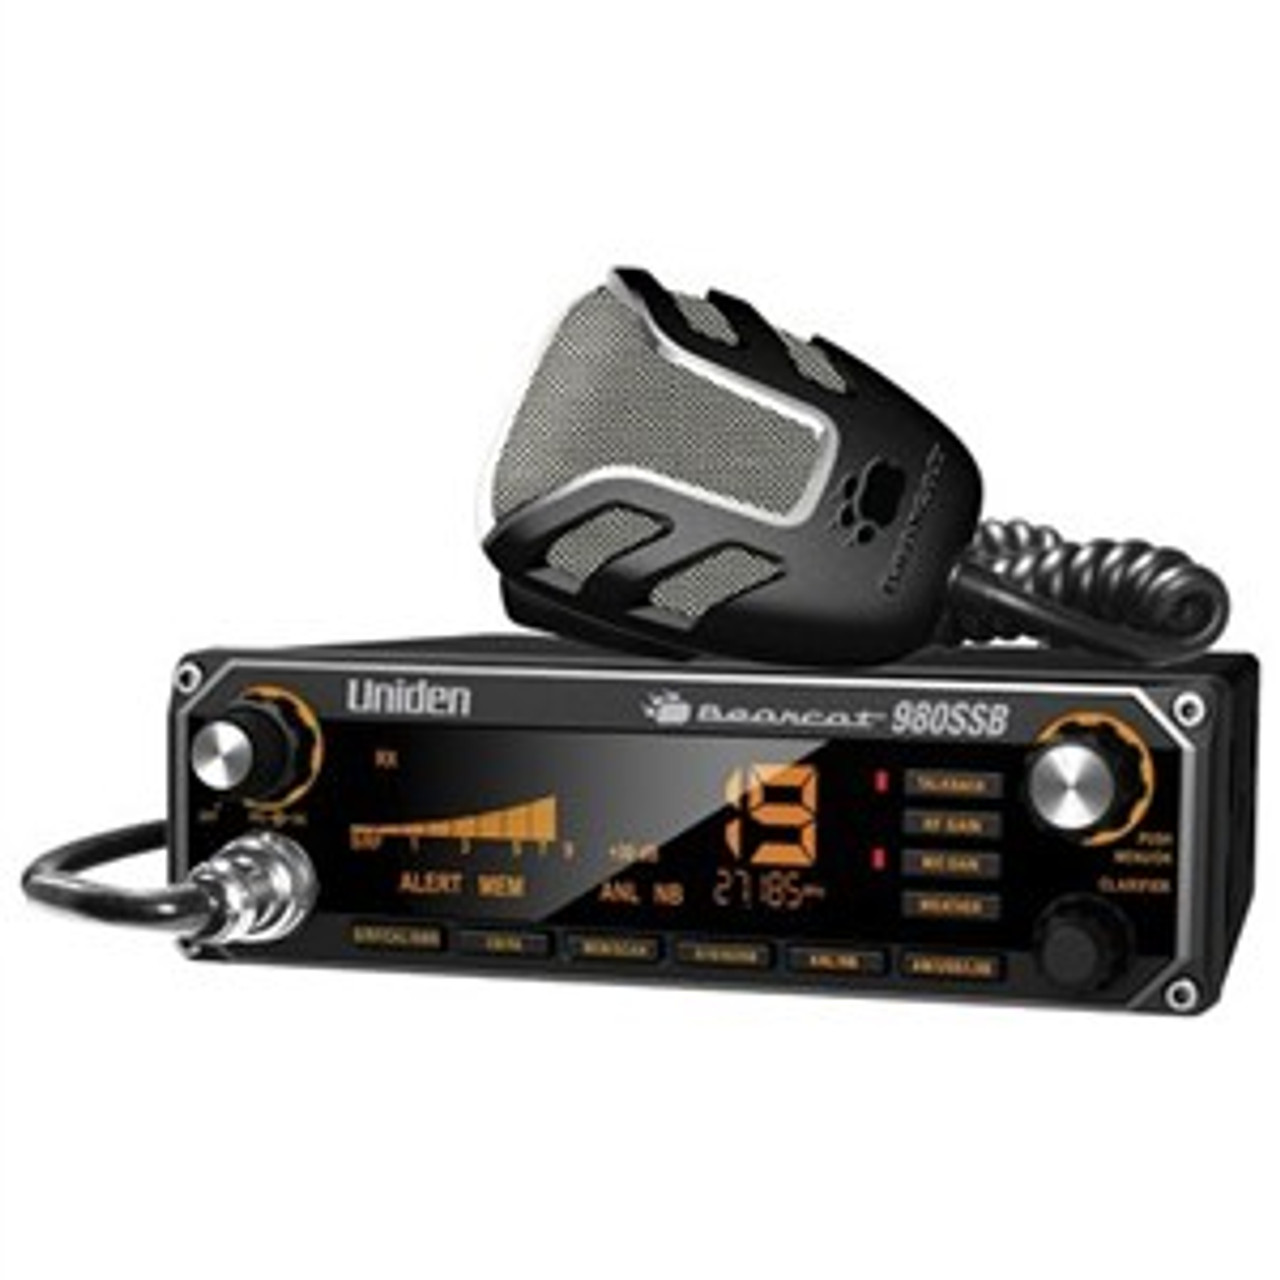 Uniden Bearcat 980 SSB CB Radio with 7 Color Display - OUT OF STOCK